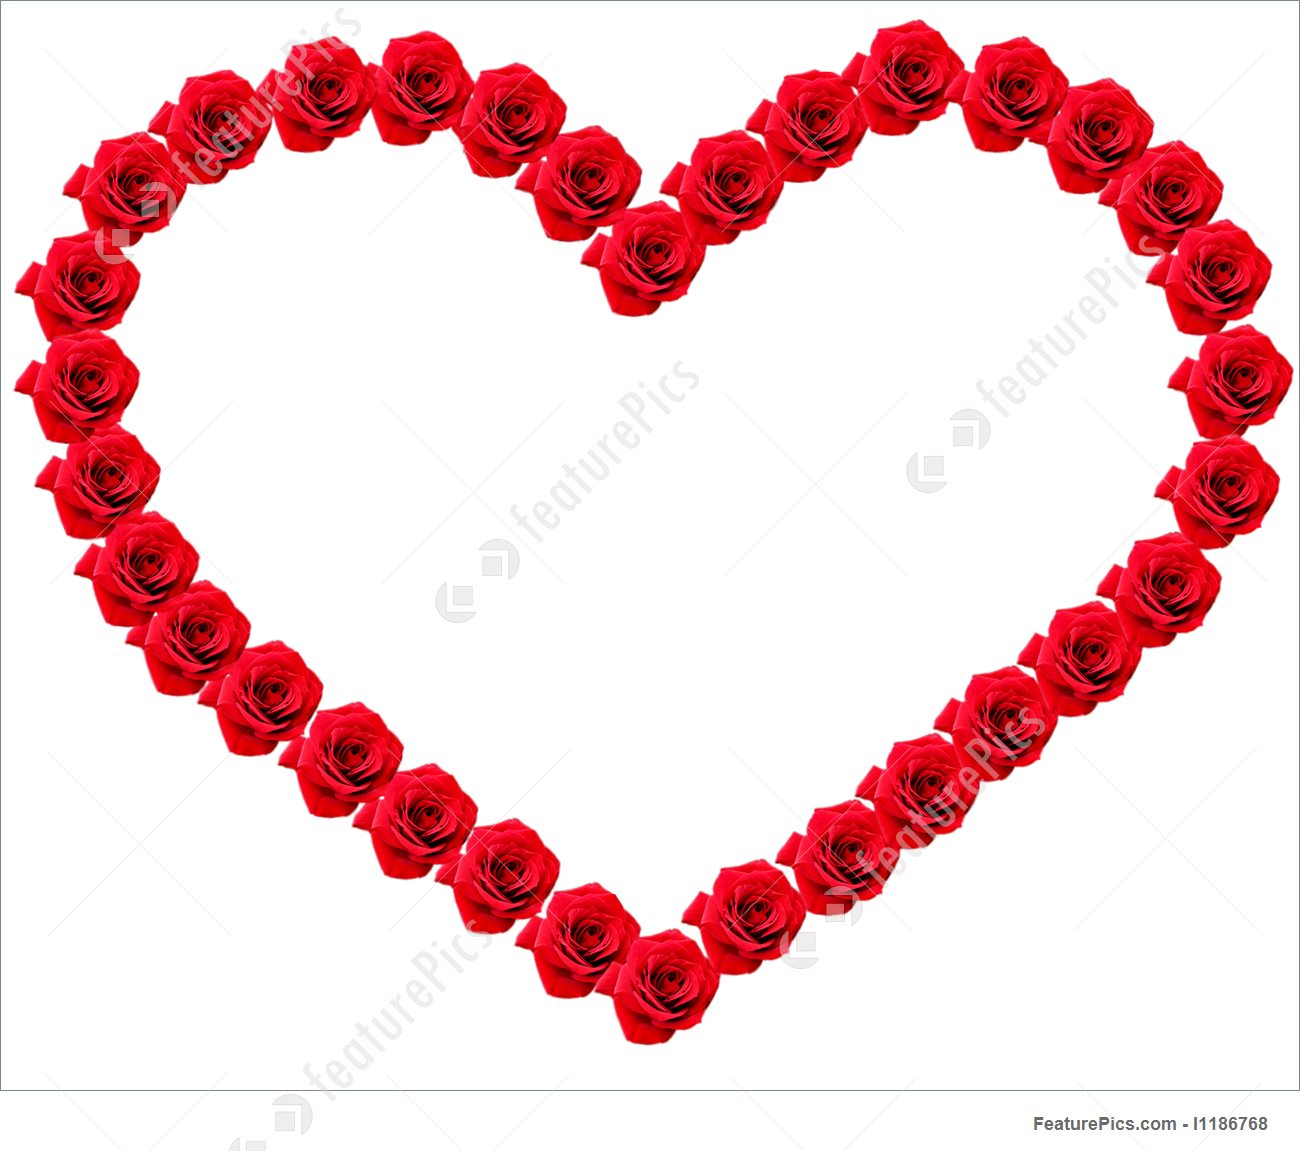 Rose heart clipart free download best rose heart clipart - Pics of roses and hearts ...